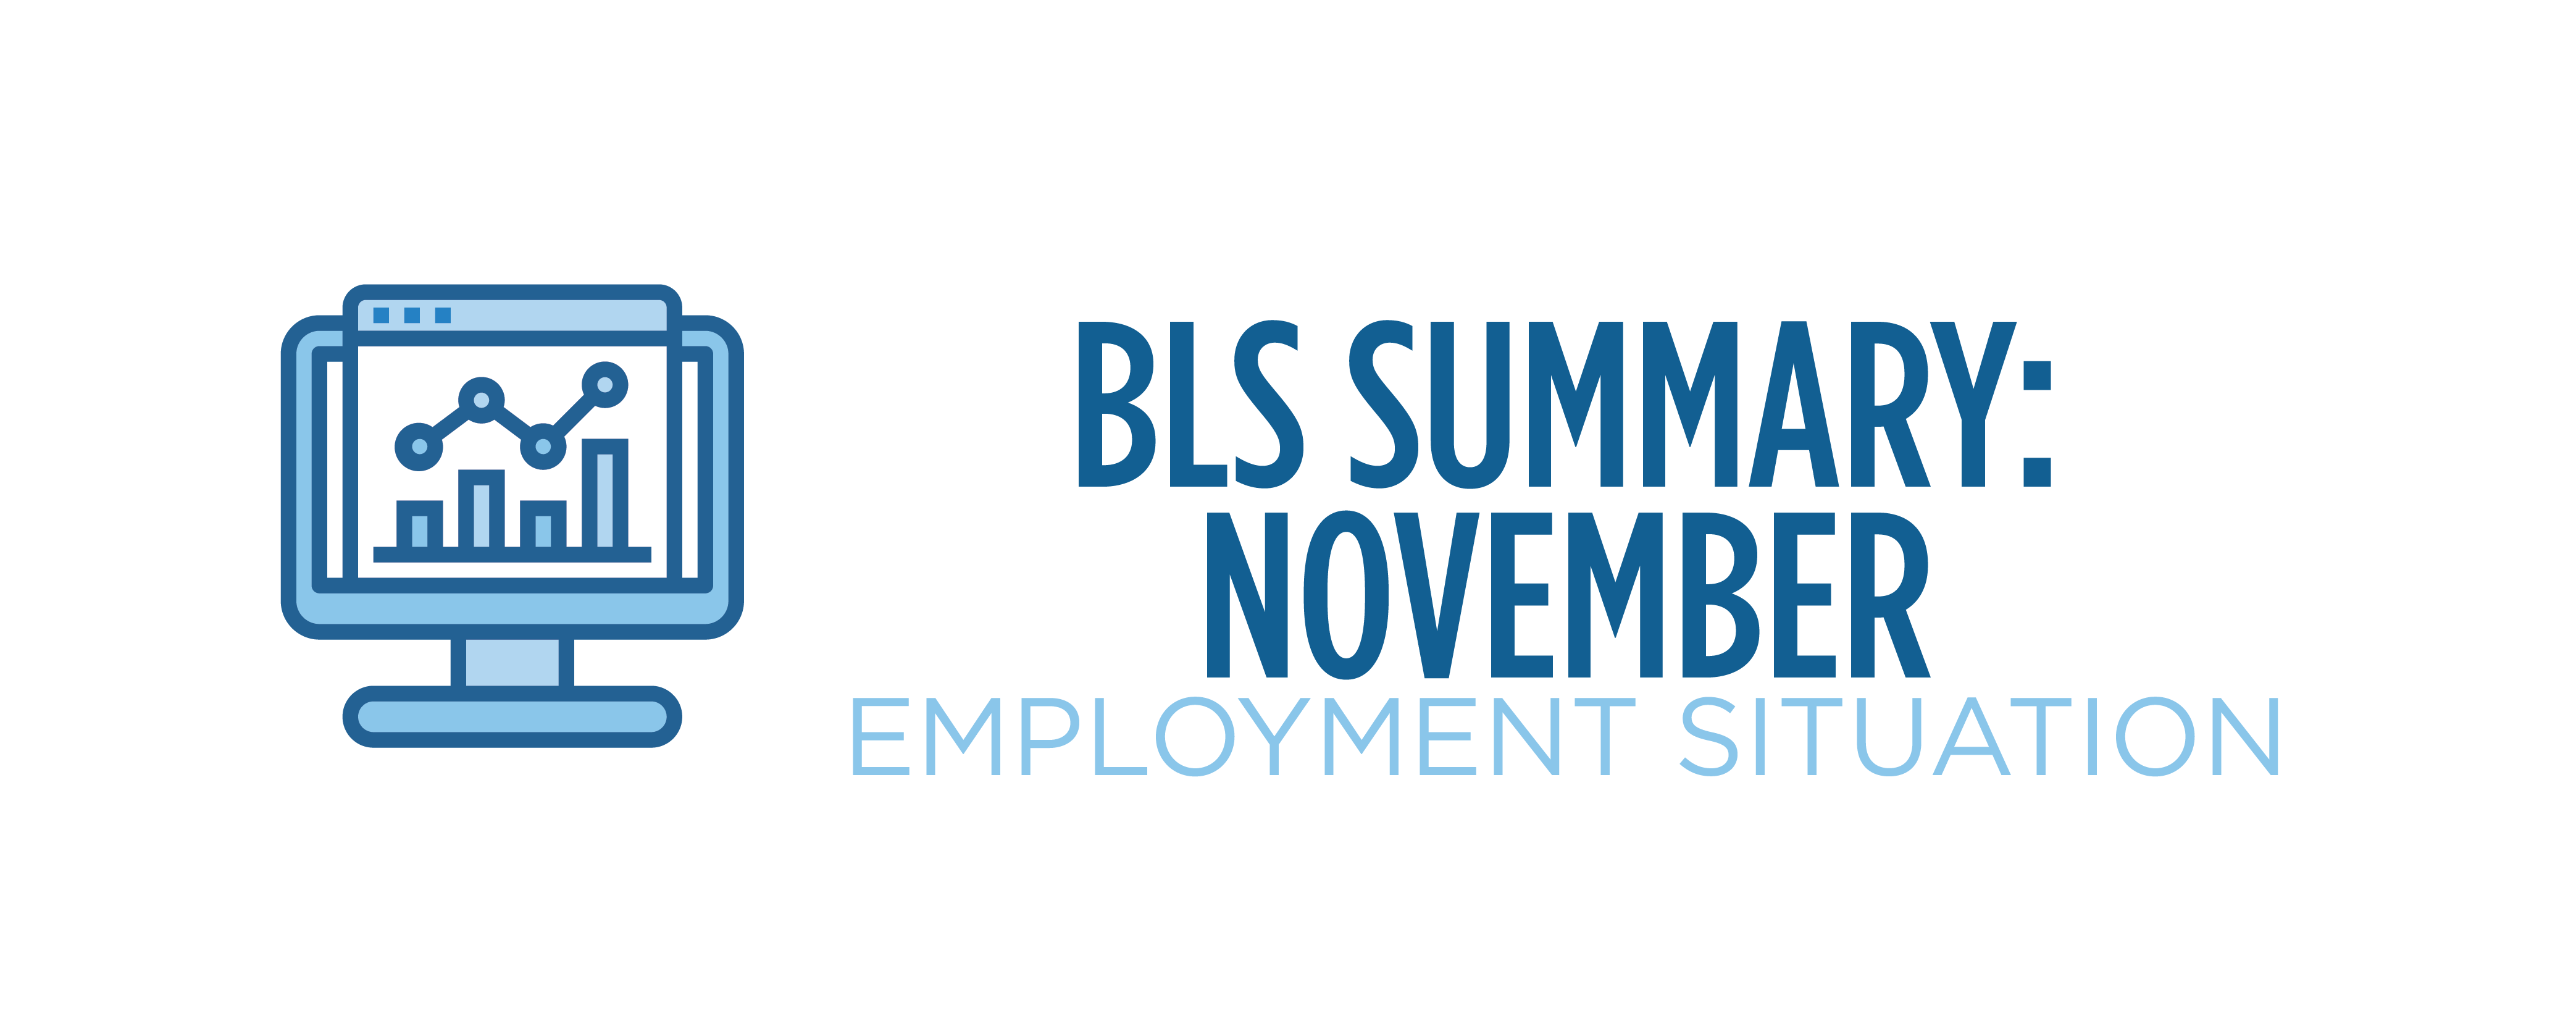 bls summary november employment situation